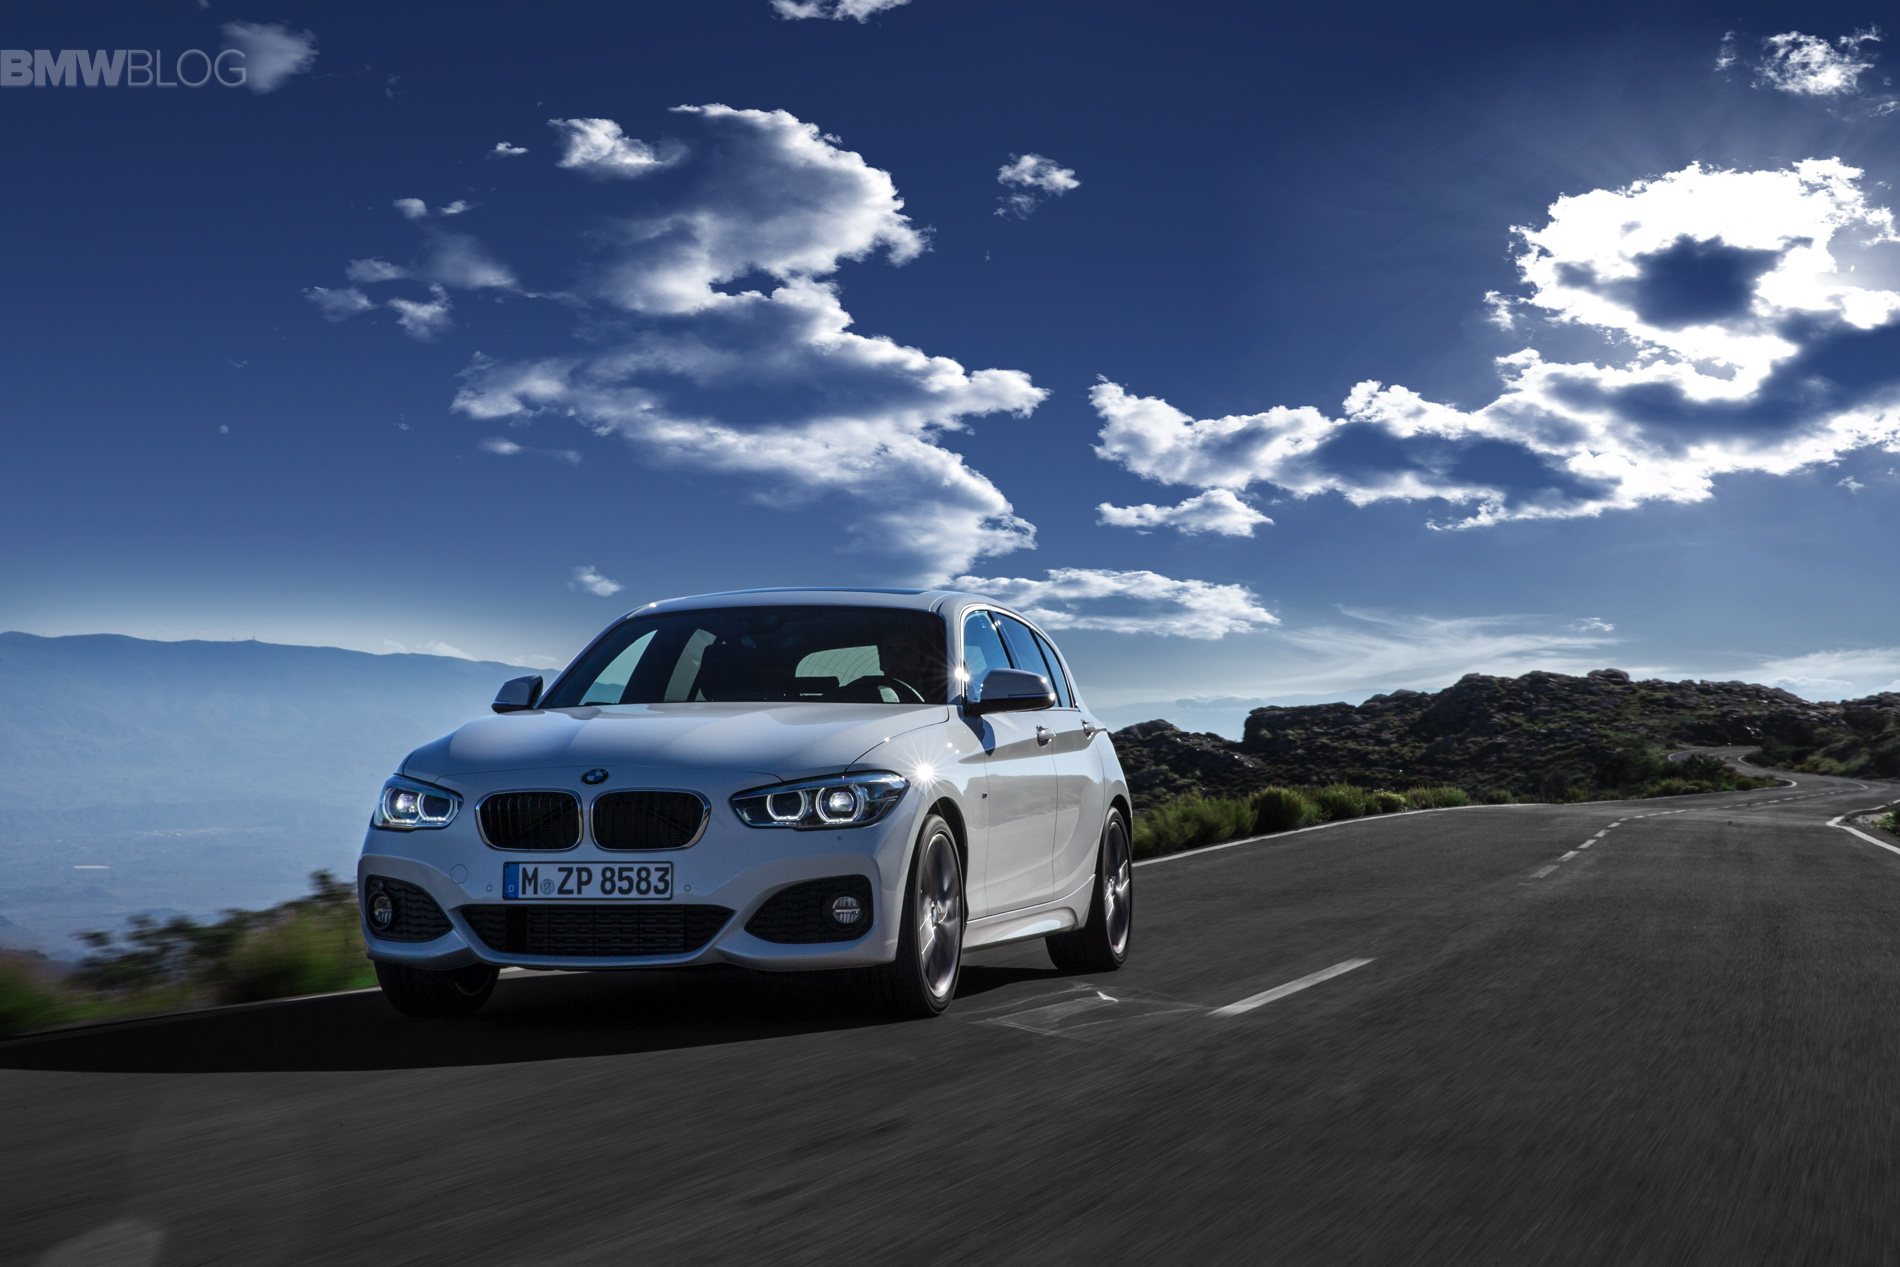 2015 bmw 1 series m sport images 08